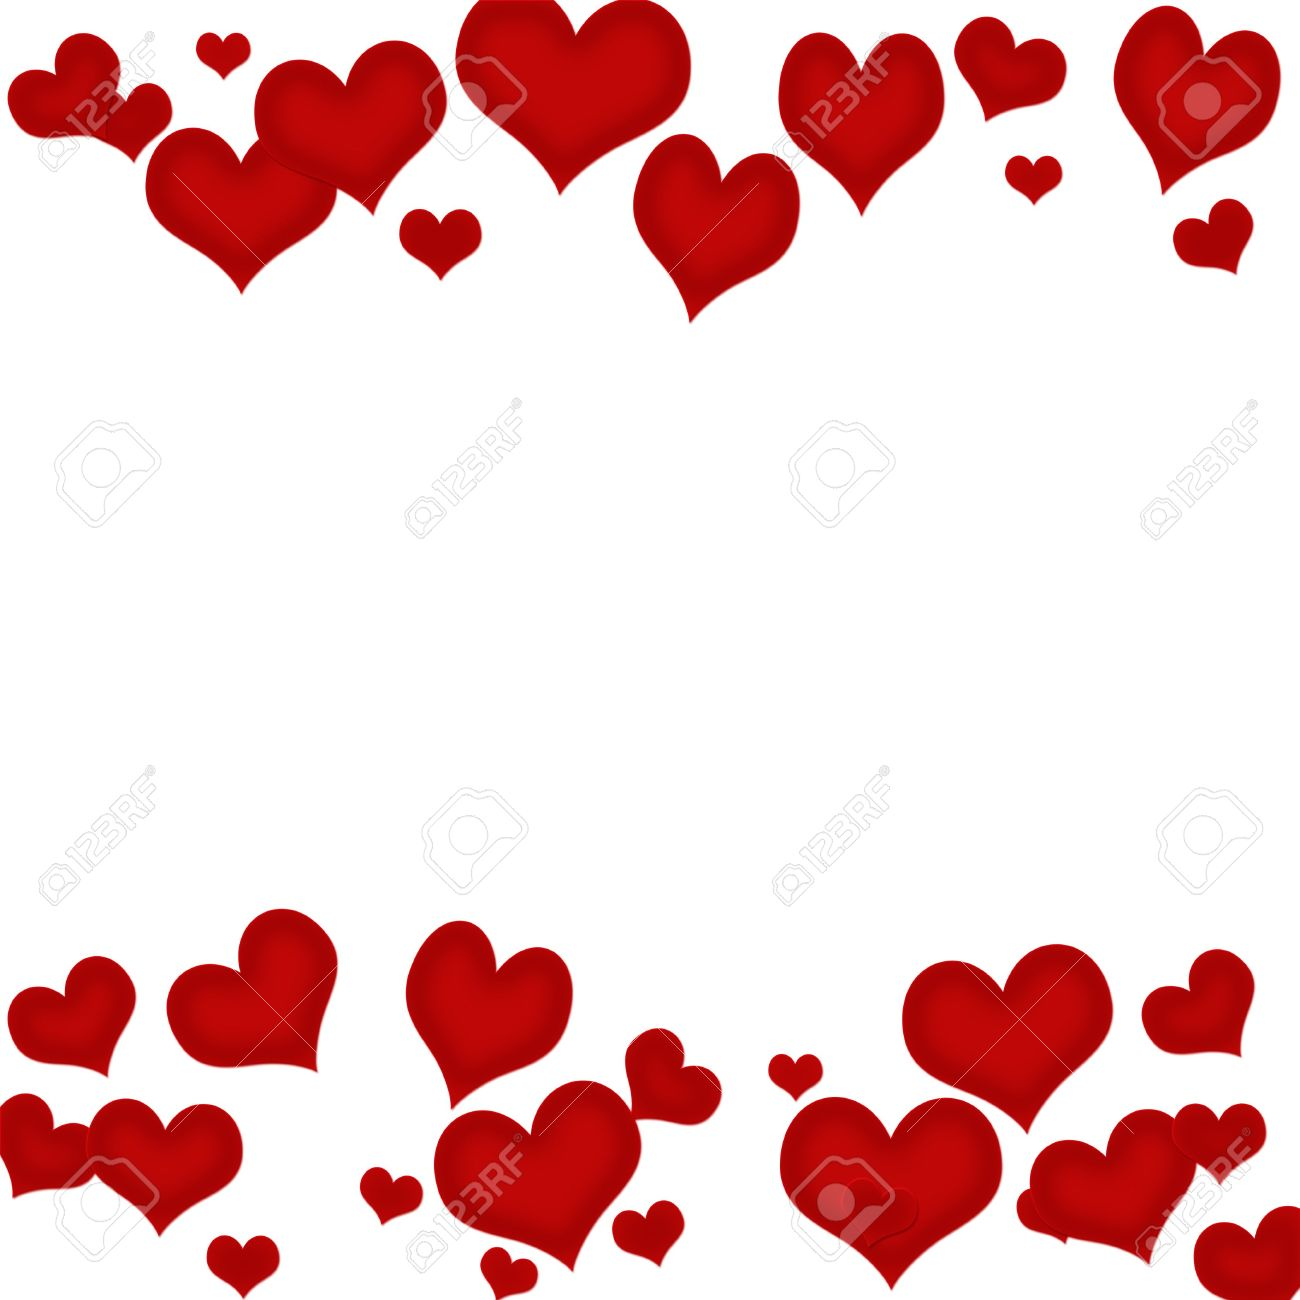 red hearts on a white background heart background stock photo rh 123rf com red heart transparent background red heart background design